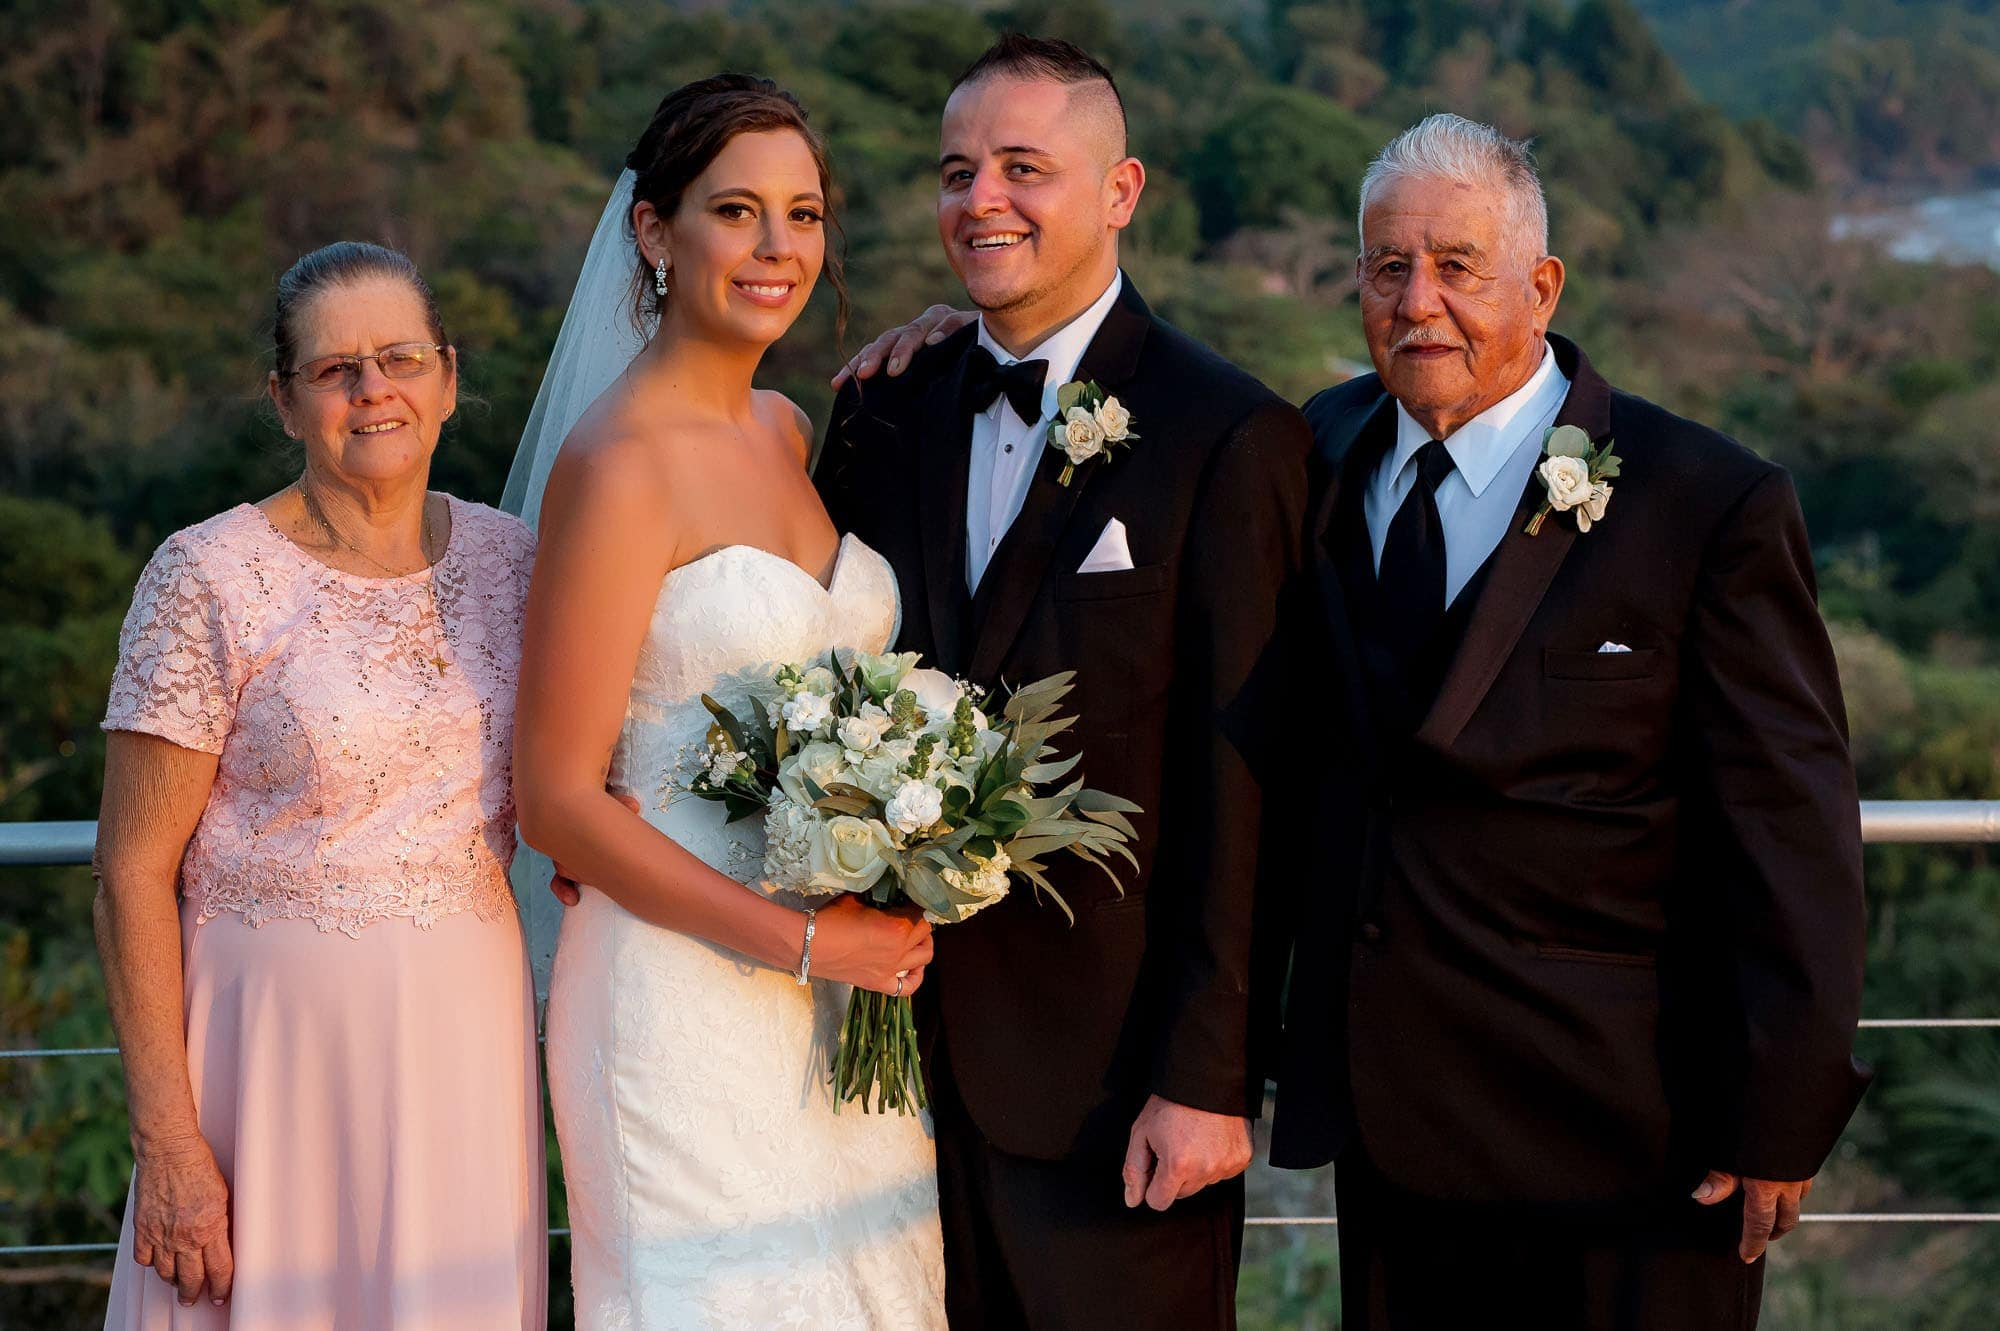 Formal wedding portrait of the bride and groom with groom's parents